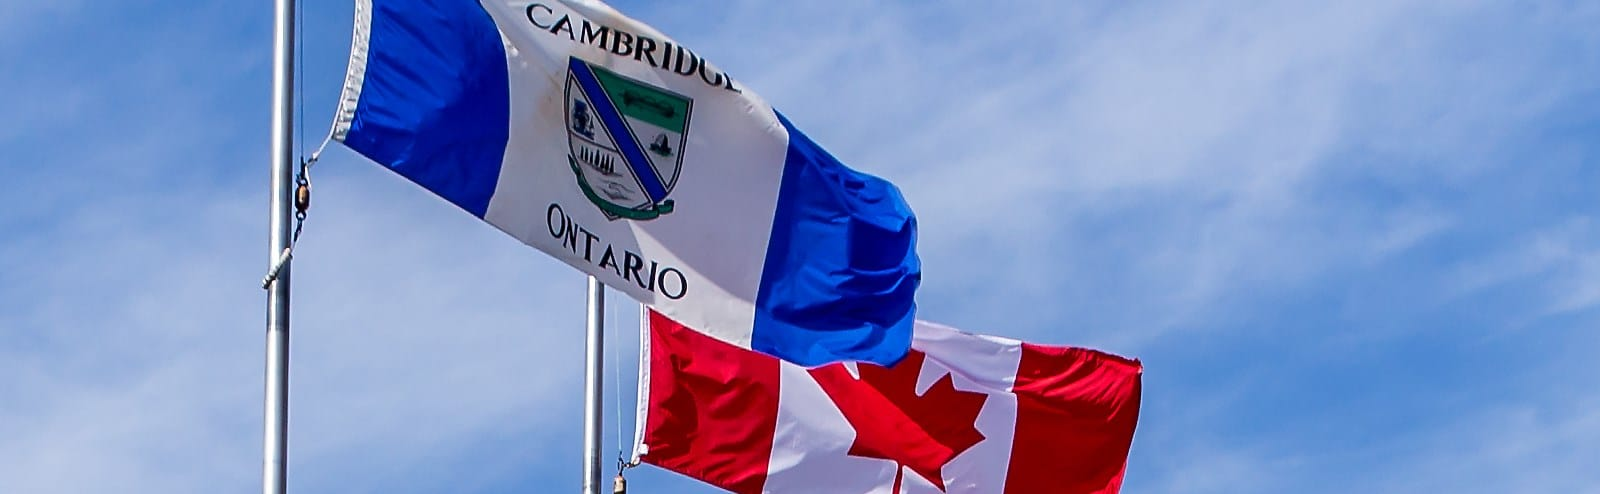 Flags of Canada and the City of Cambridge